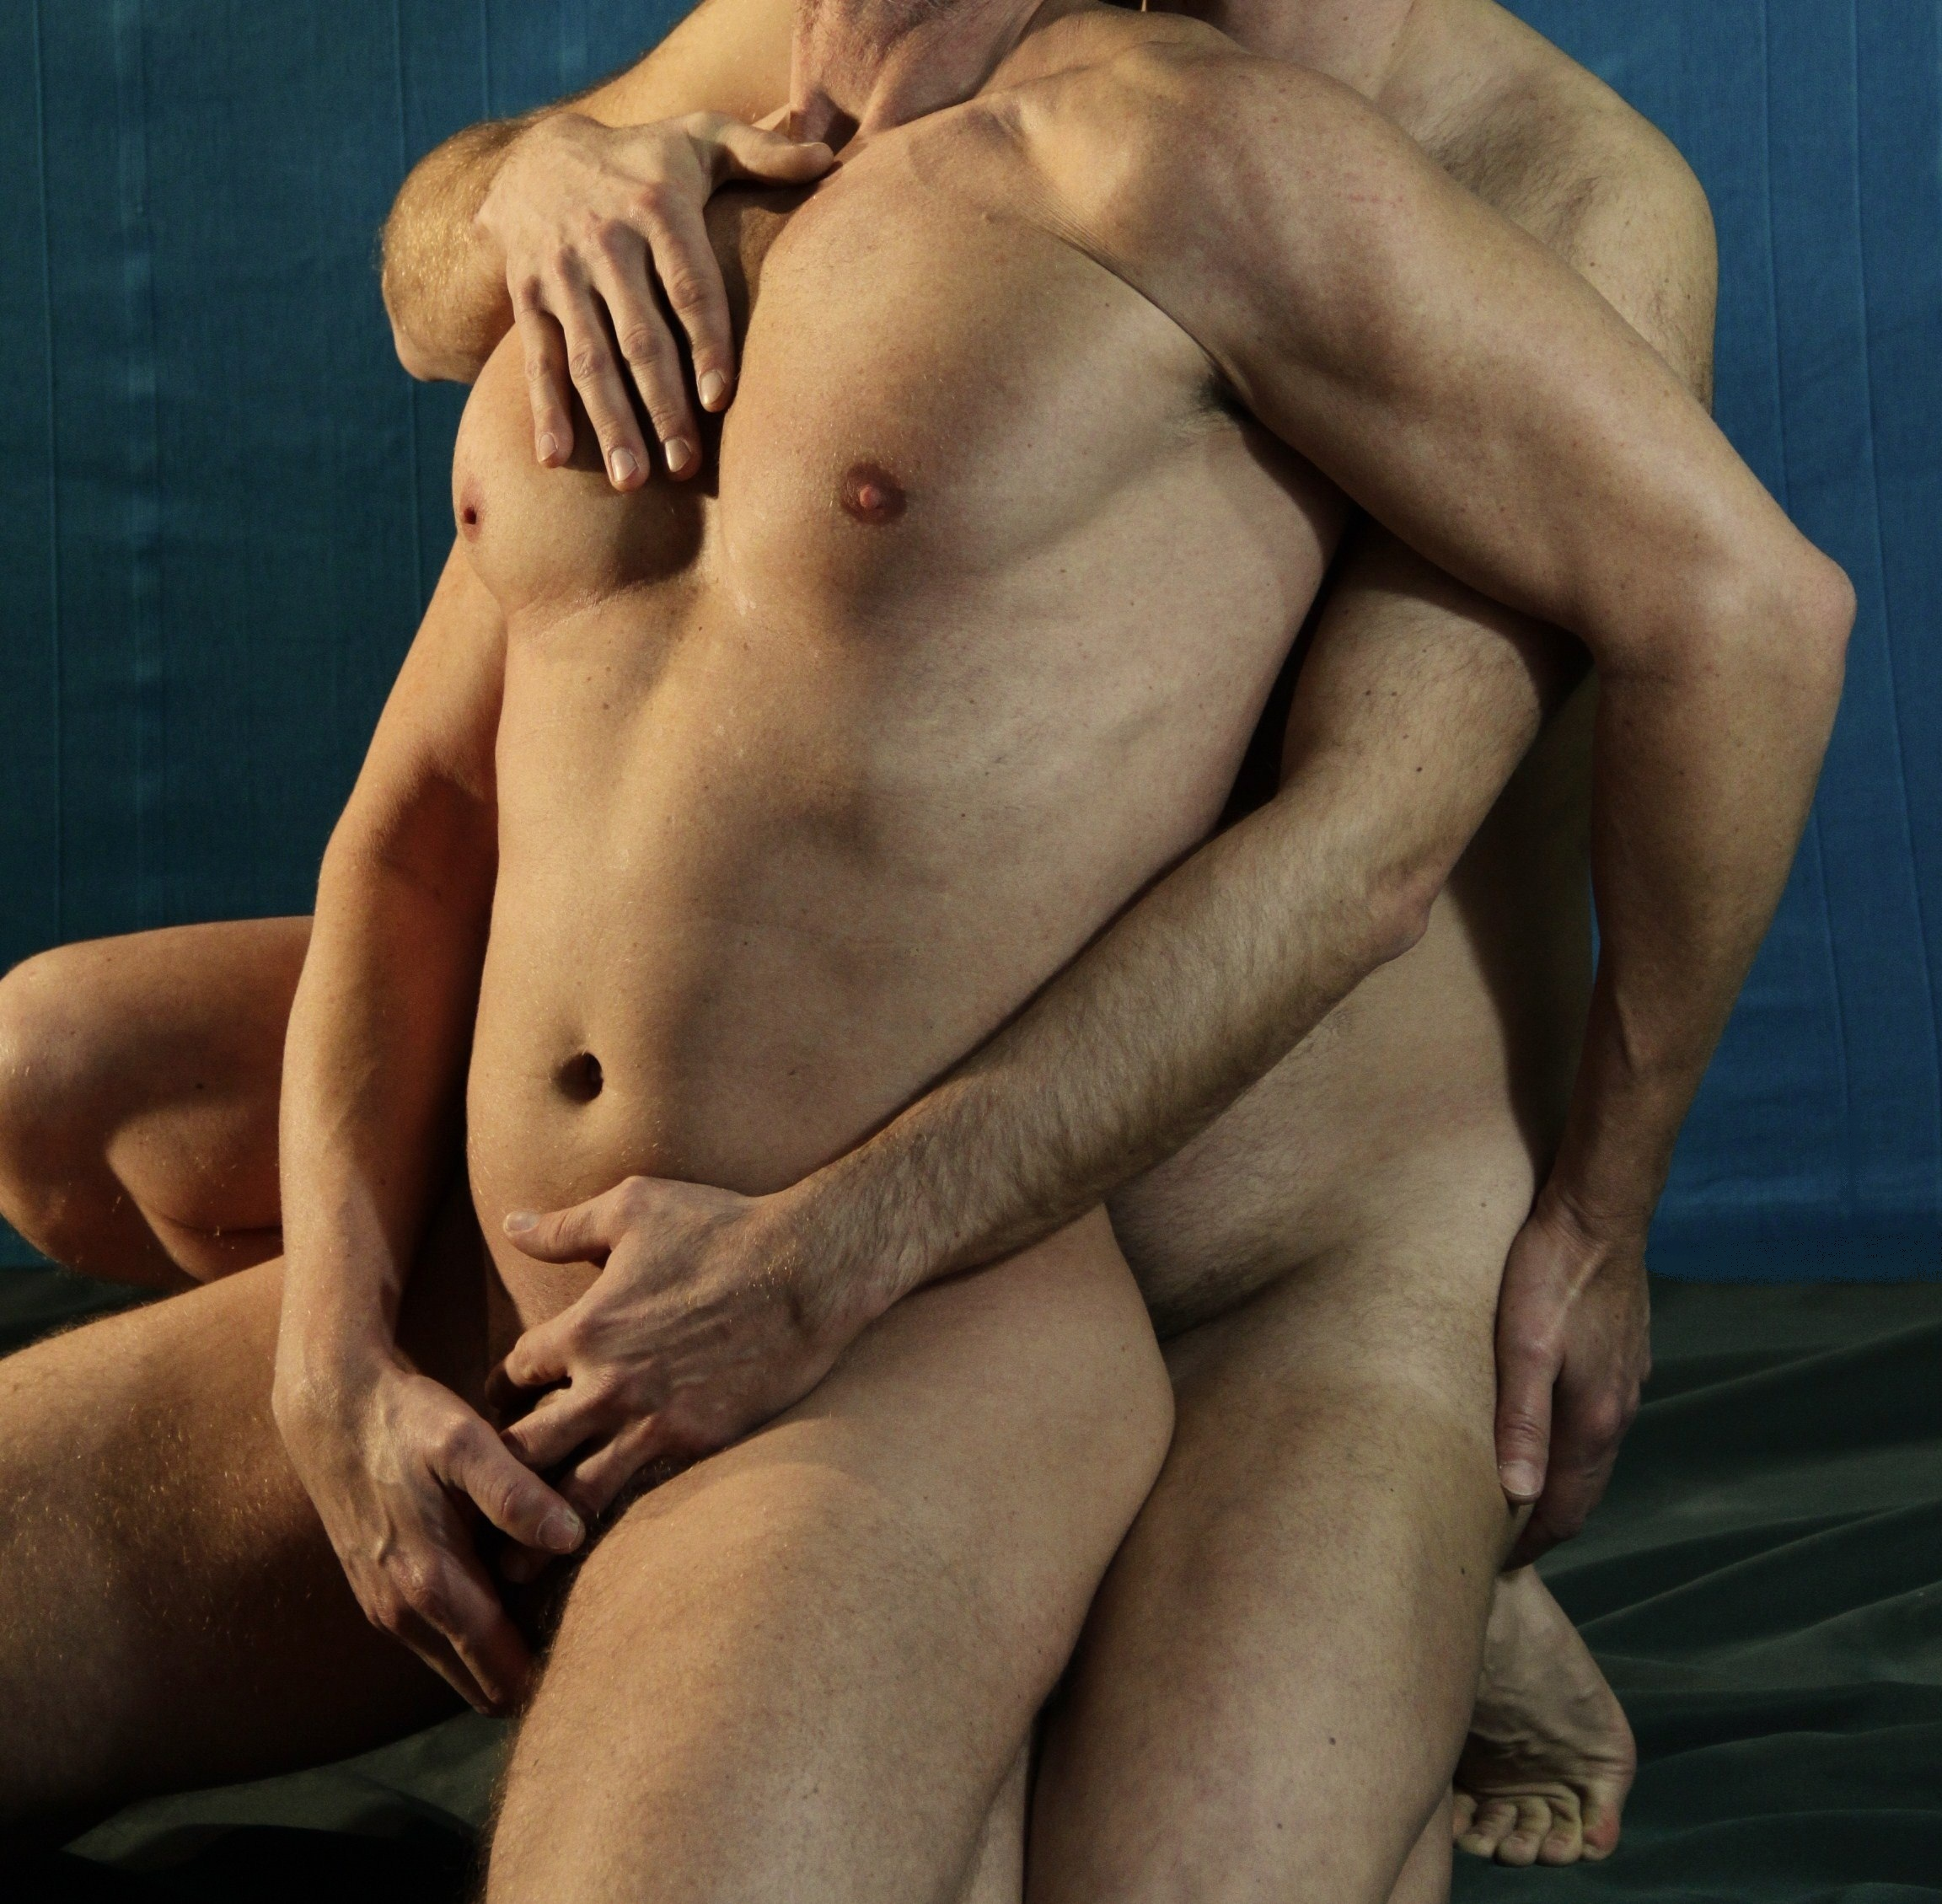 Oral Sex Gay Men 54